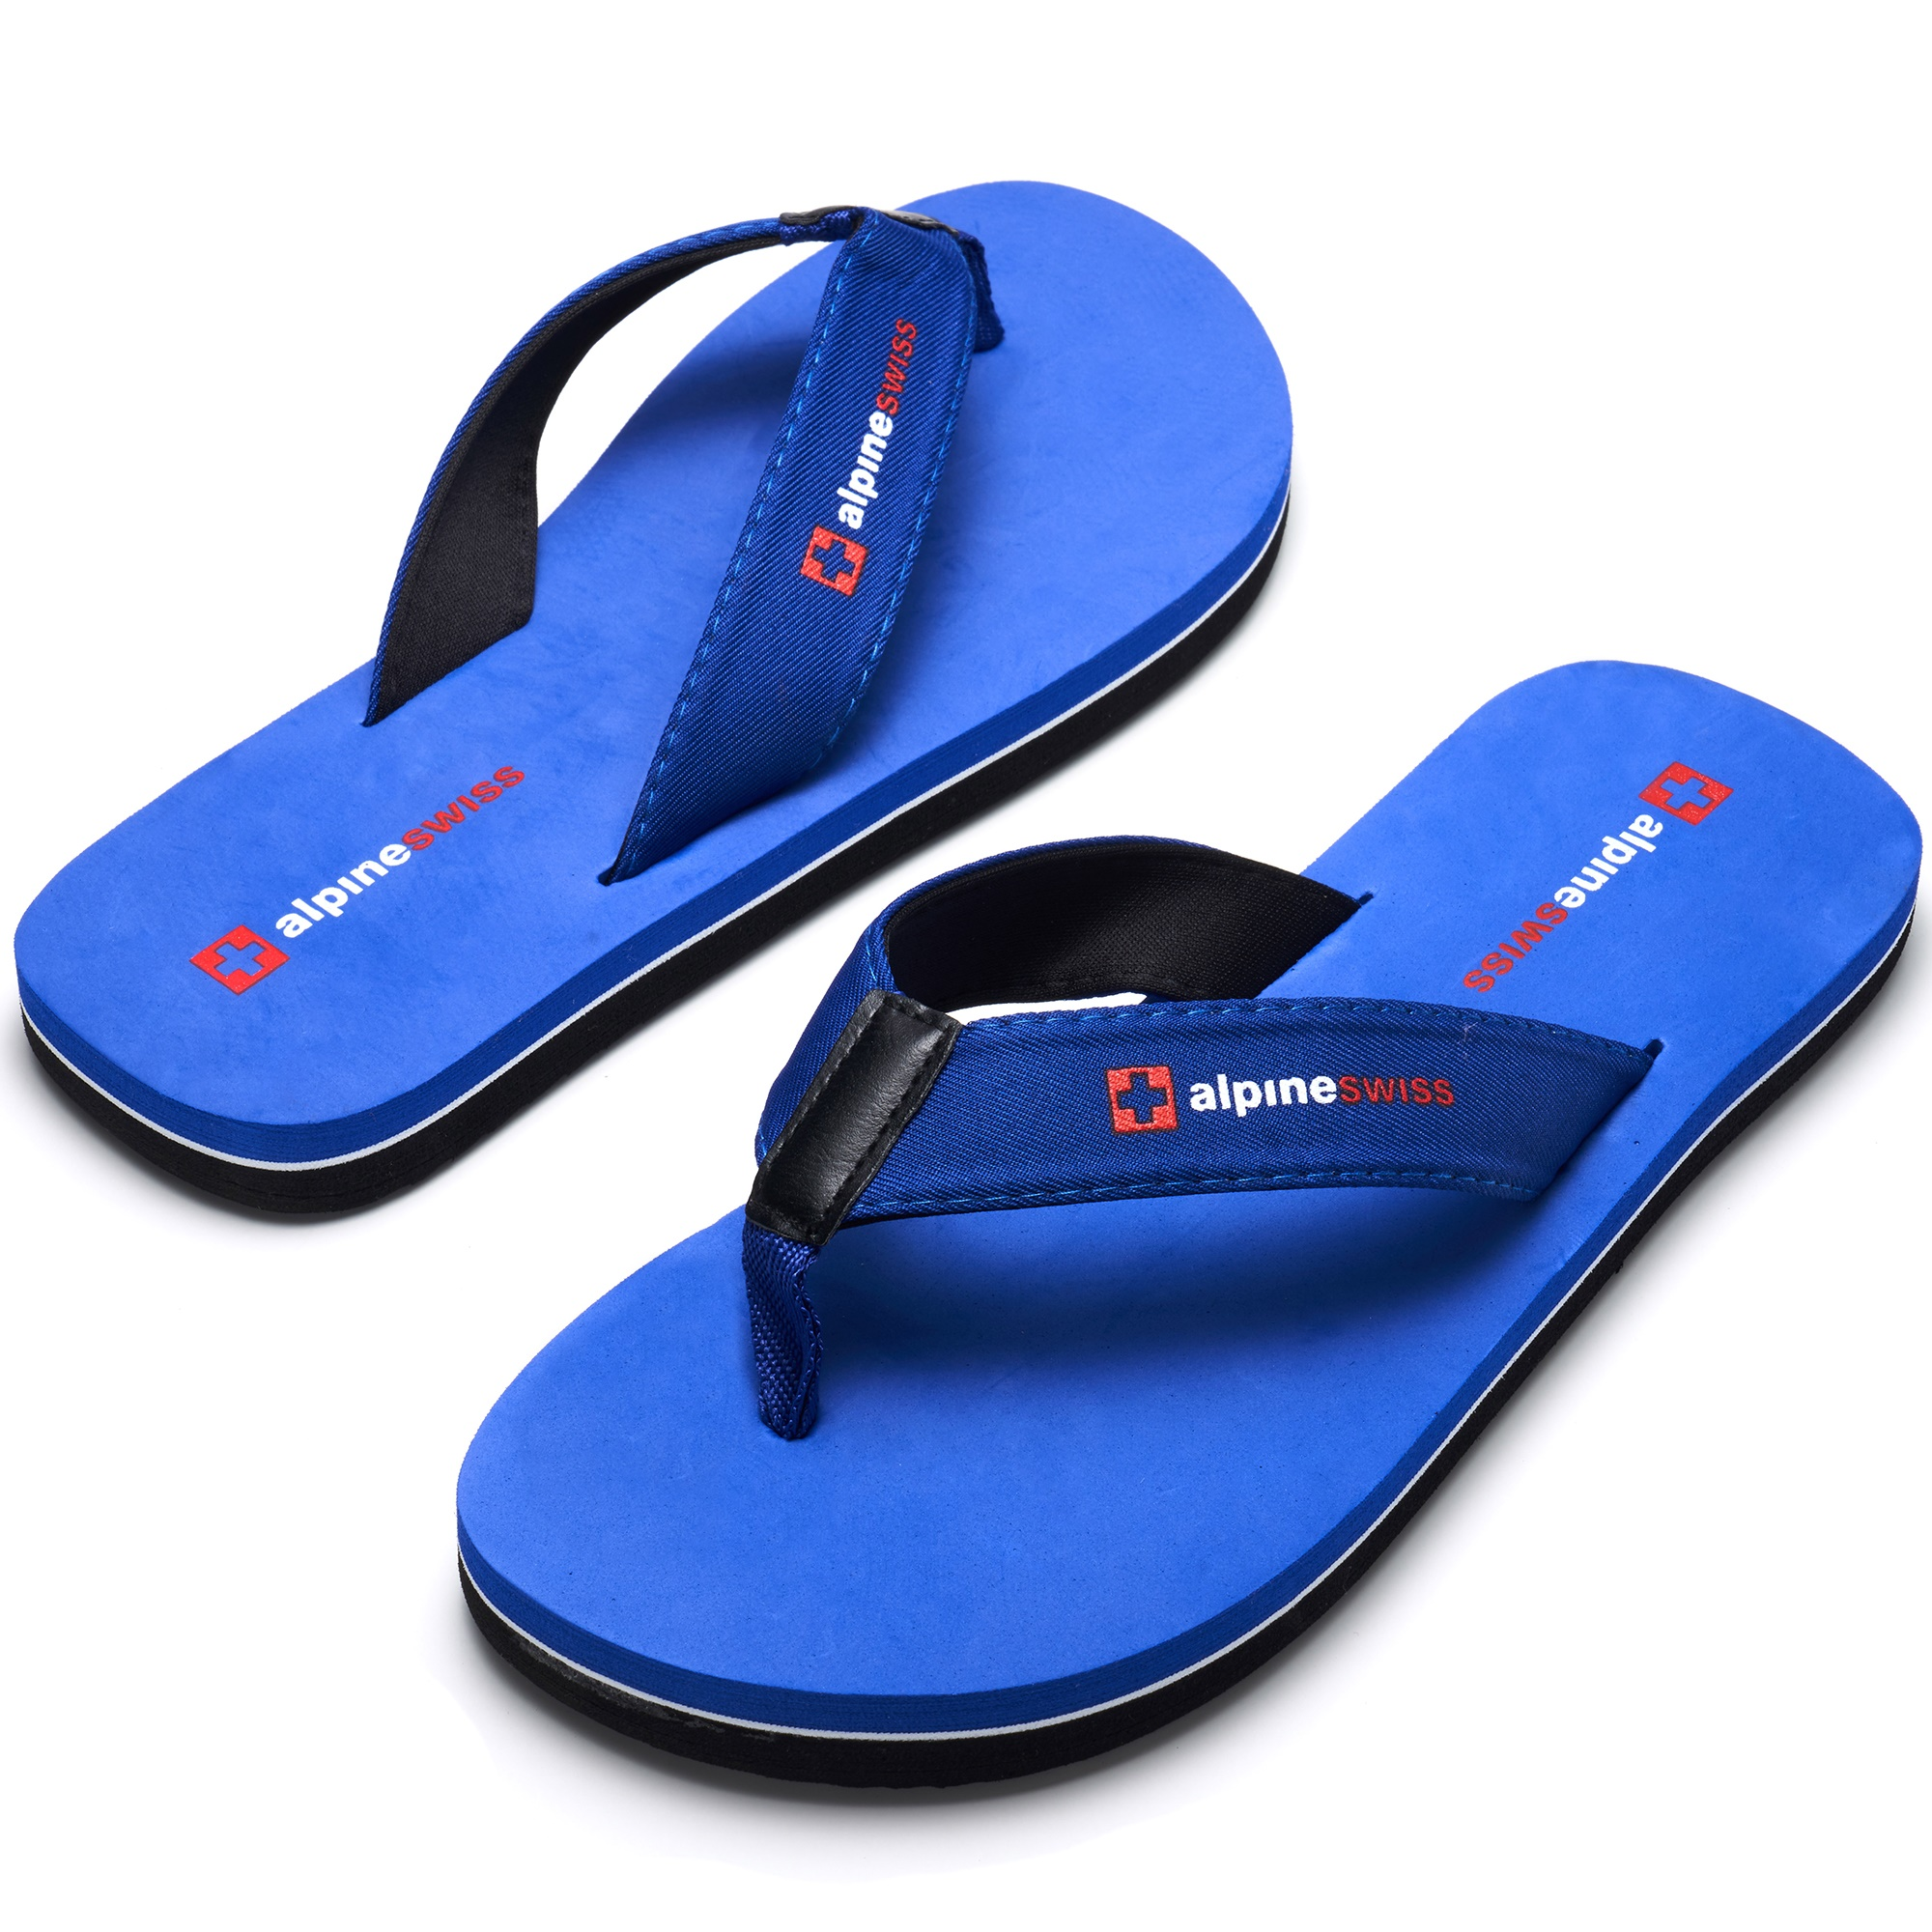 Alpine-Swiss-Mens-Flip-Flops-Beach-Sandals-Lightweight-EVA-Sole-Comfort-Thongs thumbnail 60